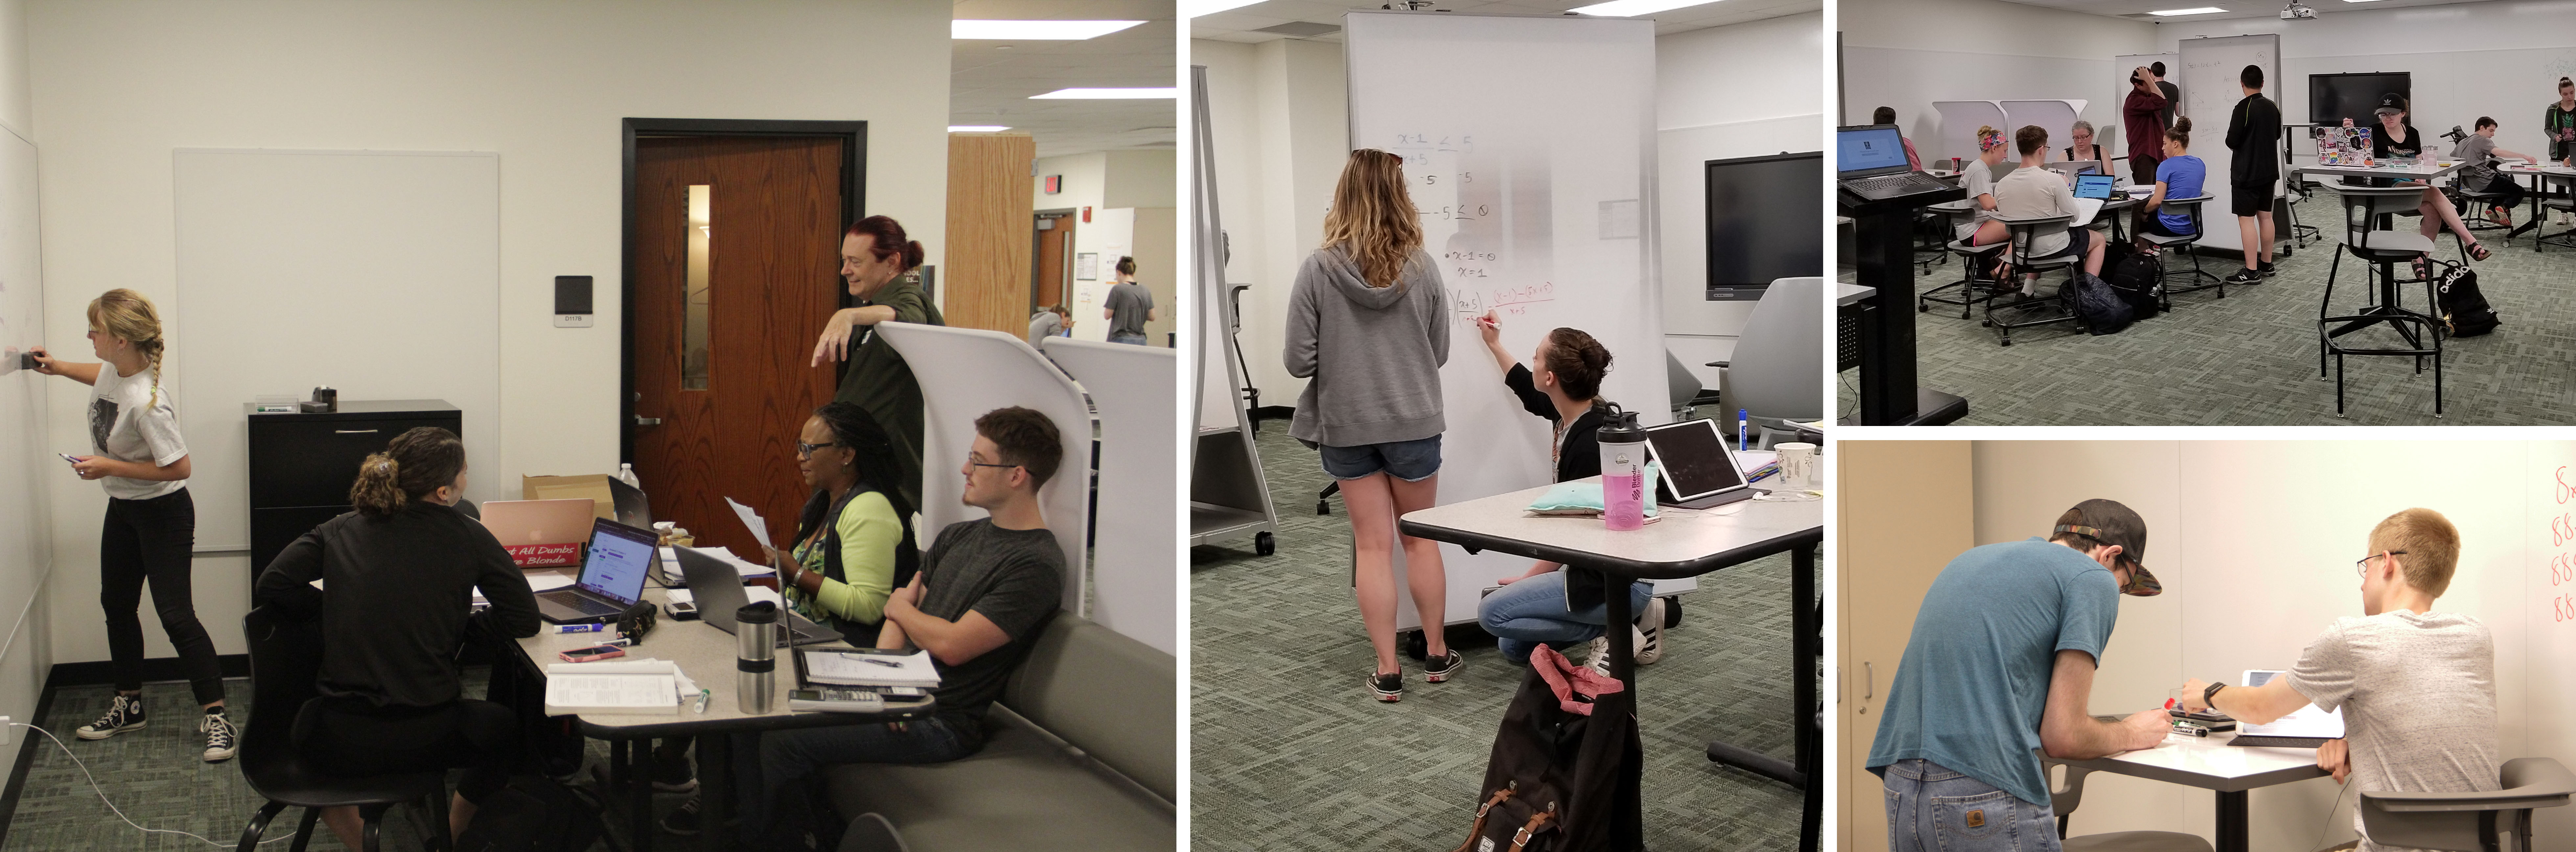 Students and tutors working and studying in the Student Success Center